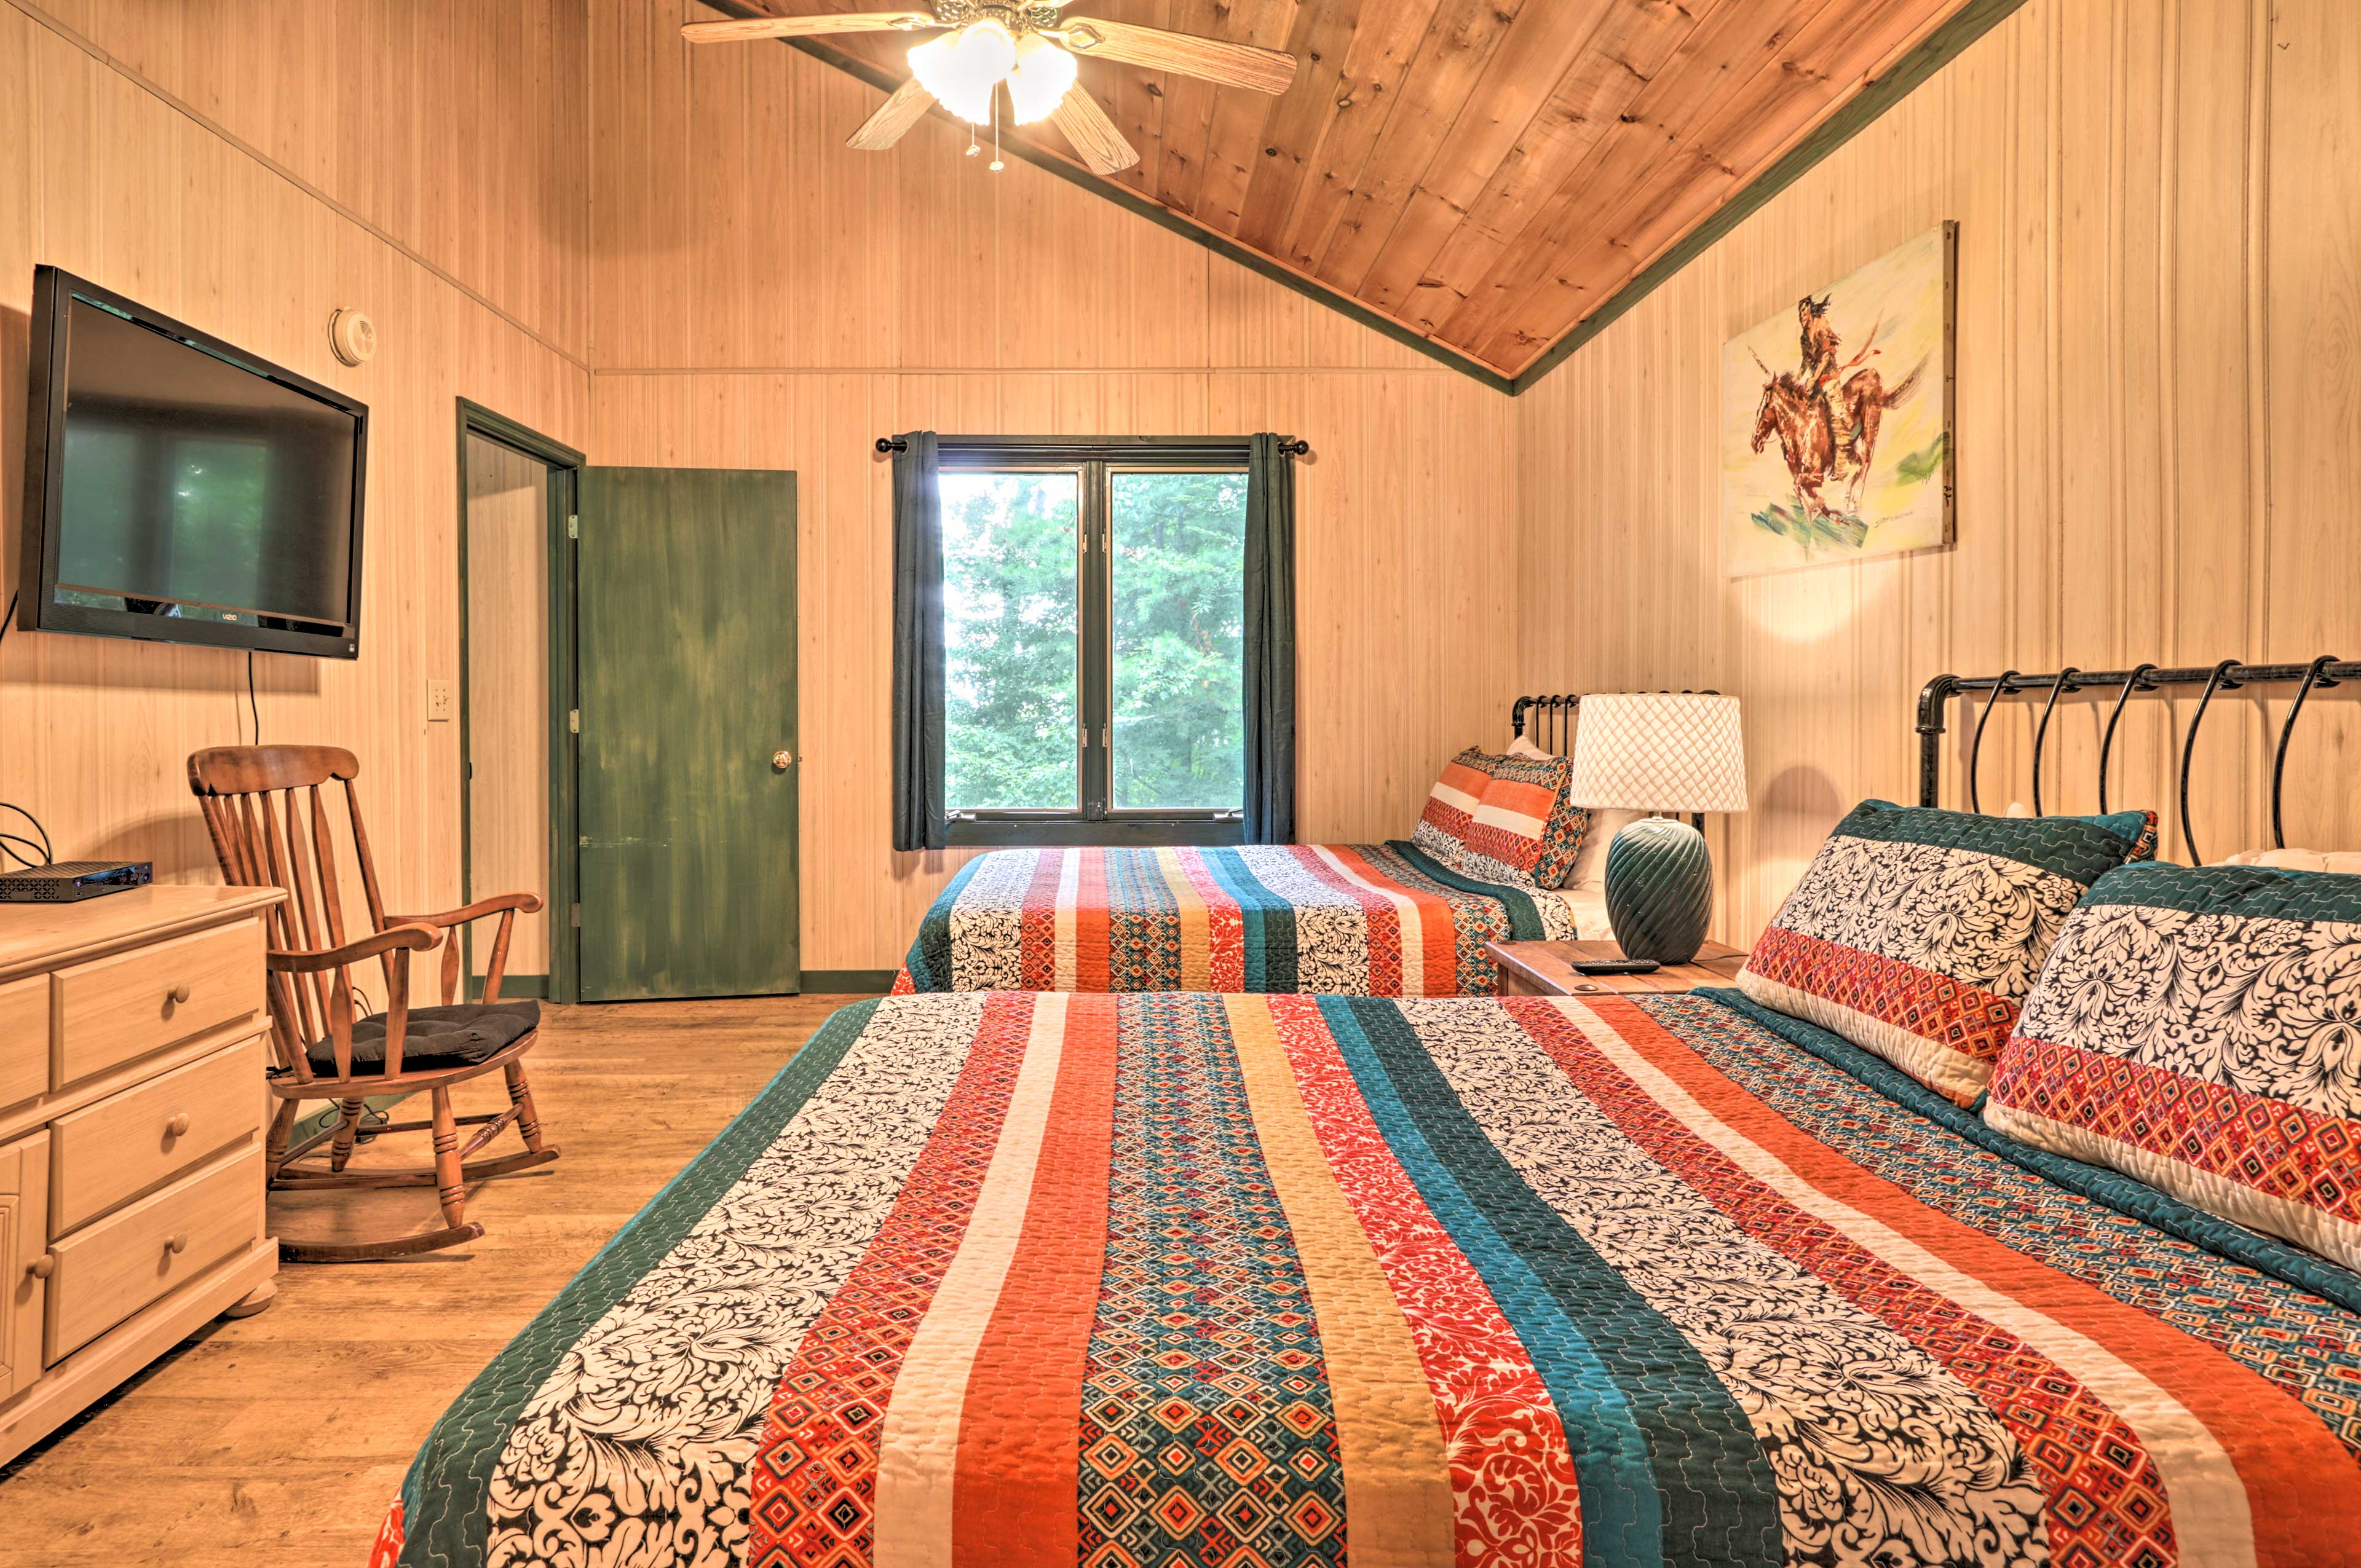 With 2 queen beds, this room sleeps 4.